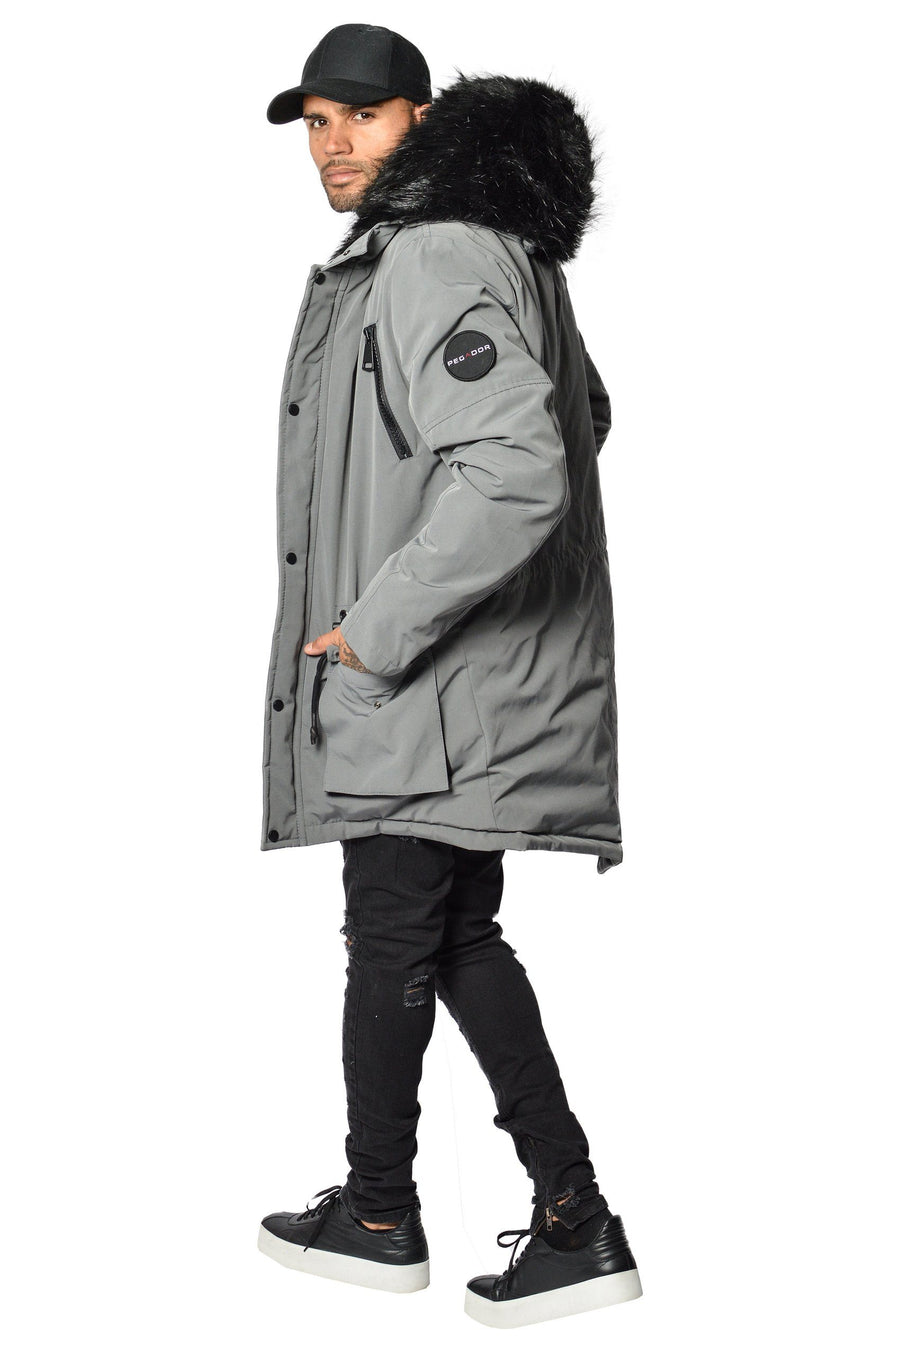 PEGADOR - Arctic Parka Space Grey & Black Fur - PEGADOR - Dominate the Hype